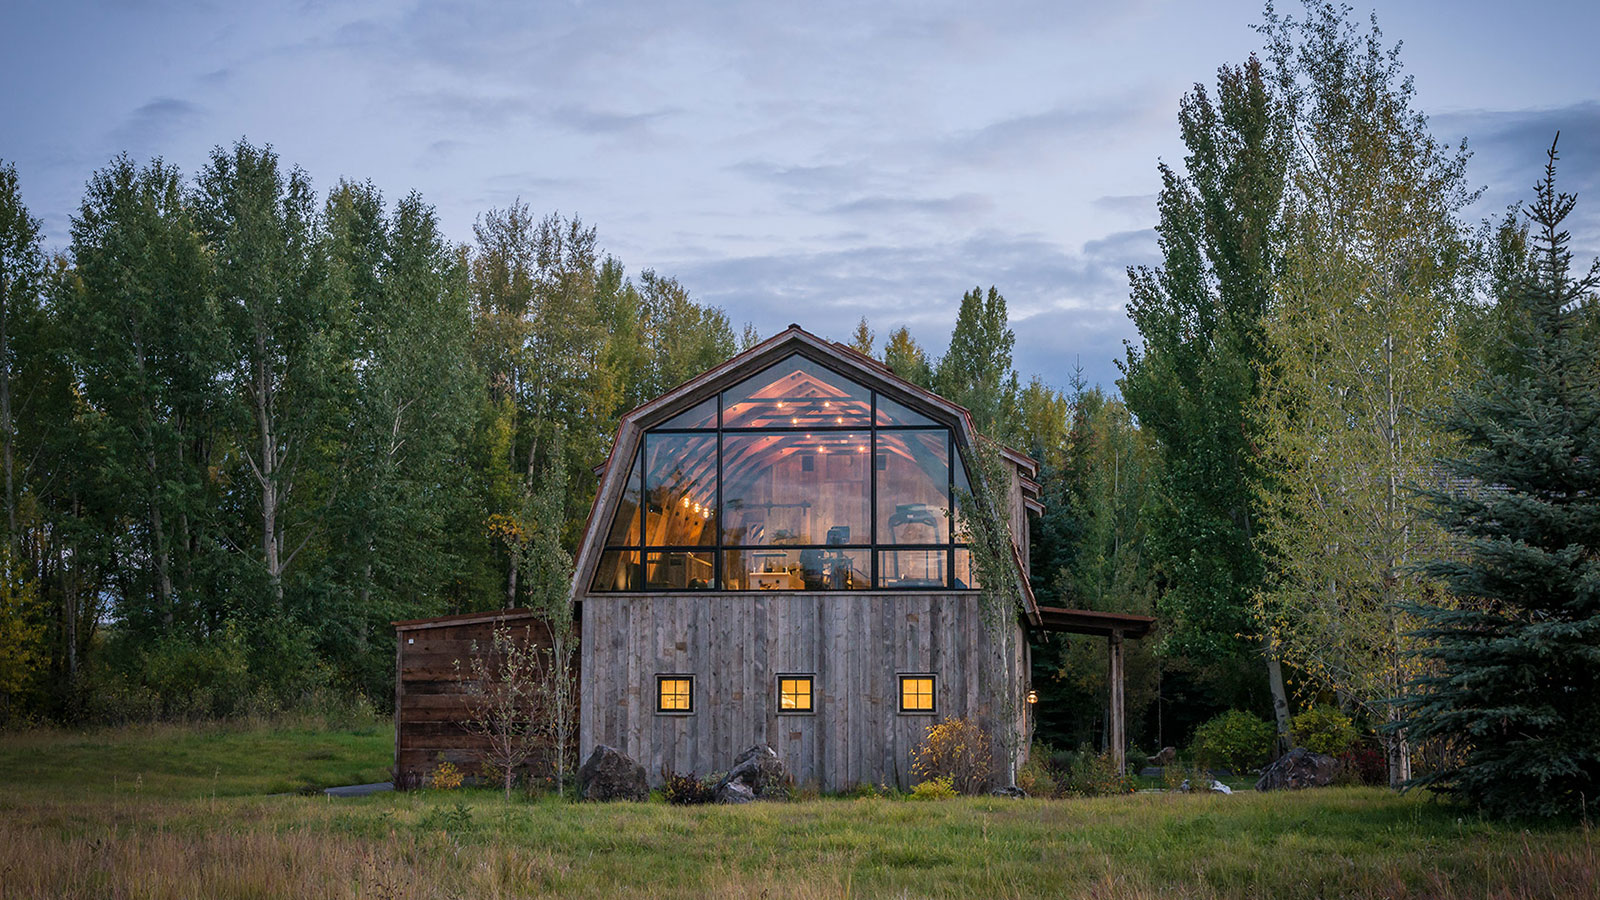 The Barn by Carney Logan Burke Architects